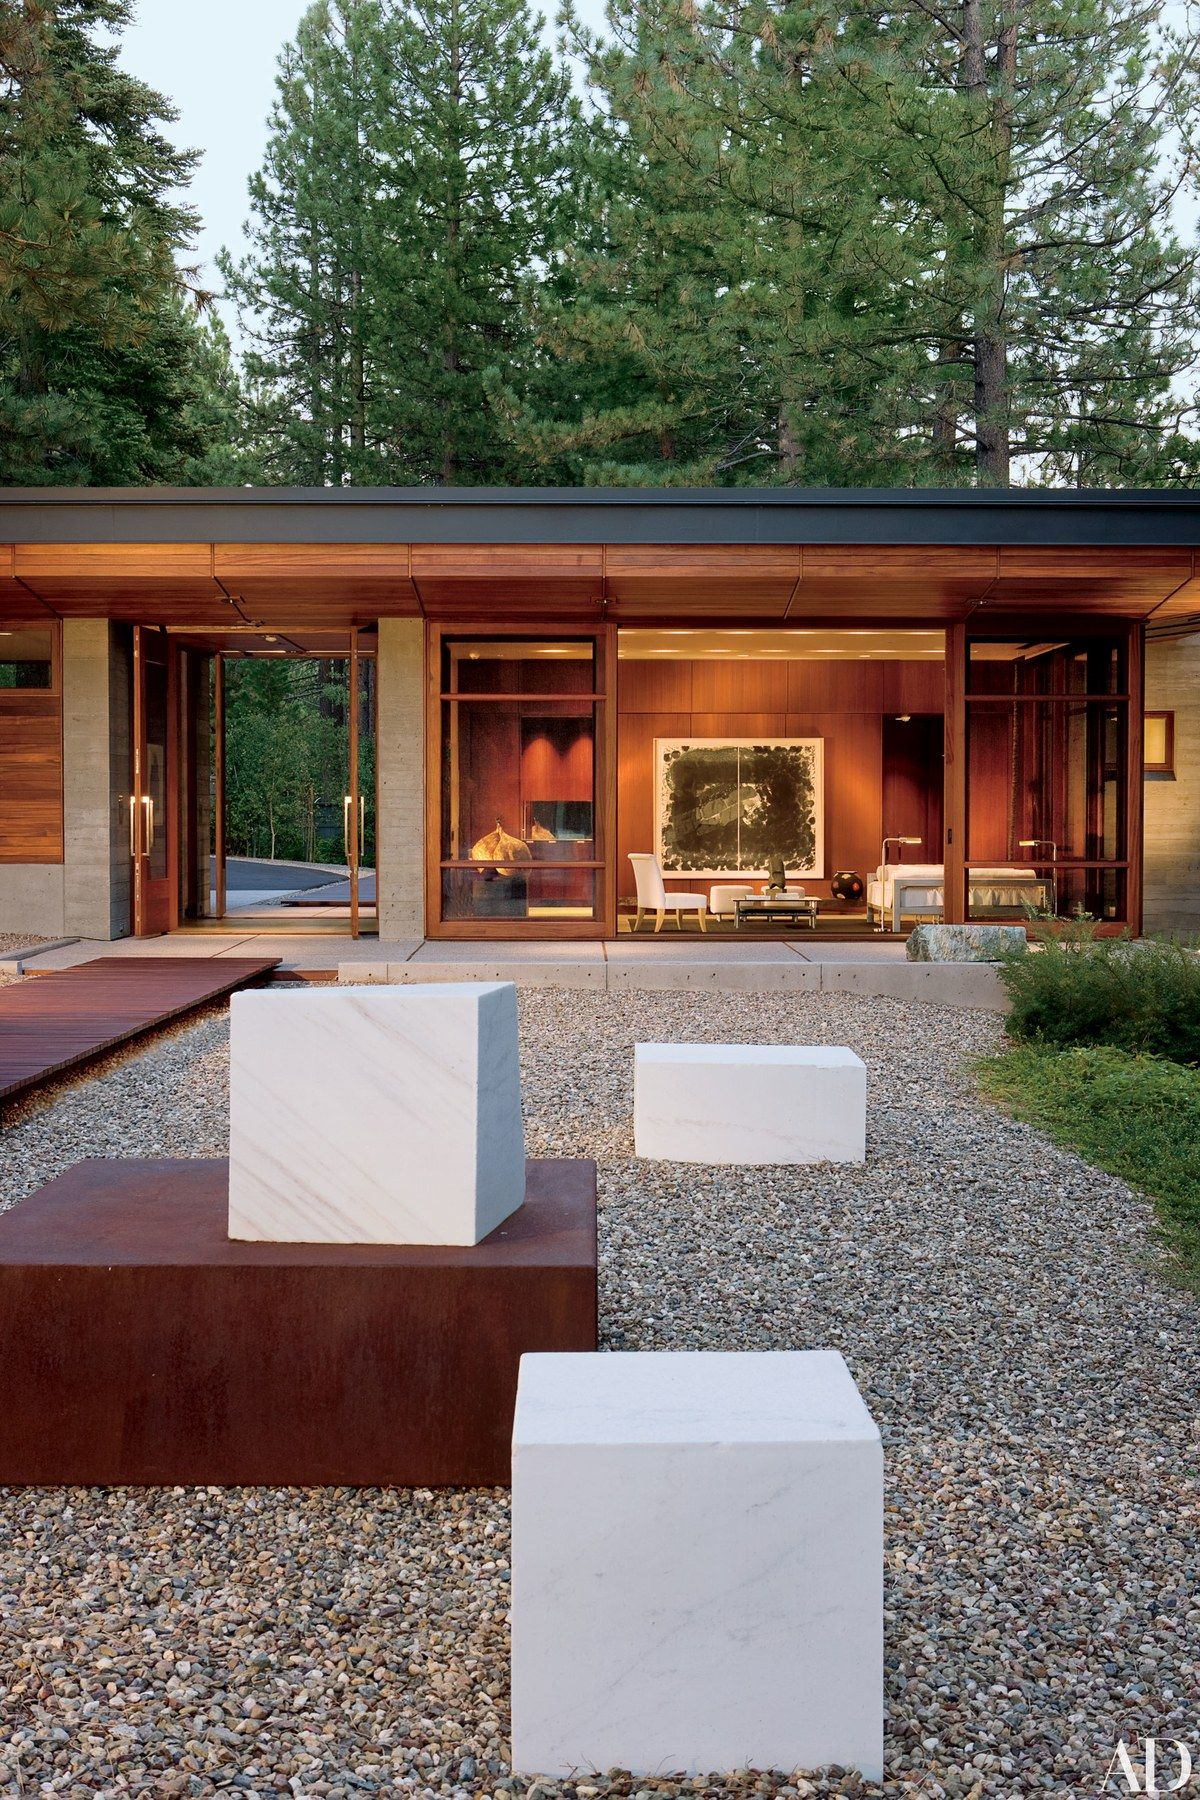 For a client's guesthouse and studio/library on the Nevada side of Lake Tahoe, architect Roderick Ashley designed two pavilions. A marble-and-steel sculpture by the project's landscape architect, Robert Murase, and his son Scott leads to the guesthouse.